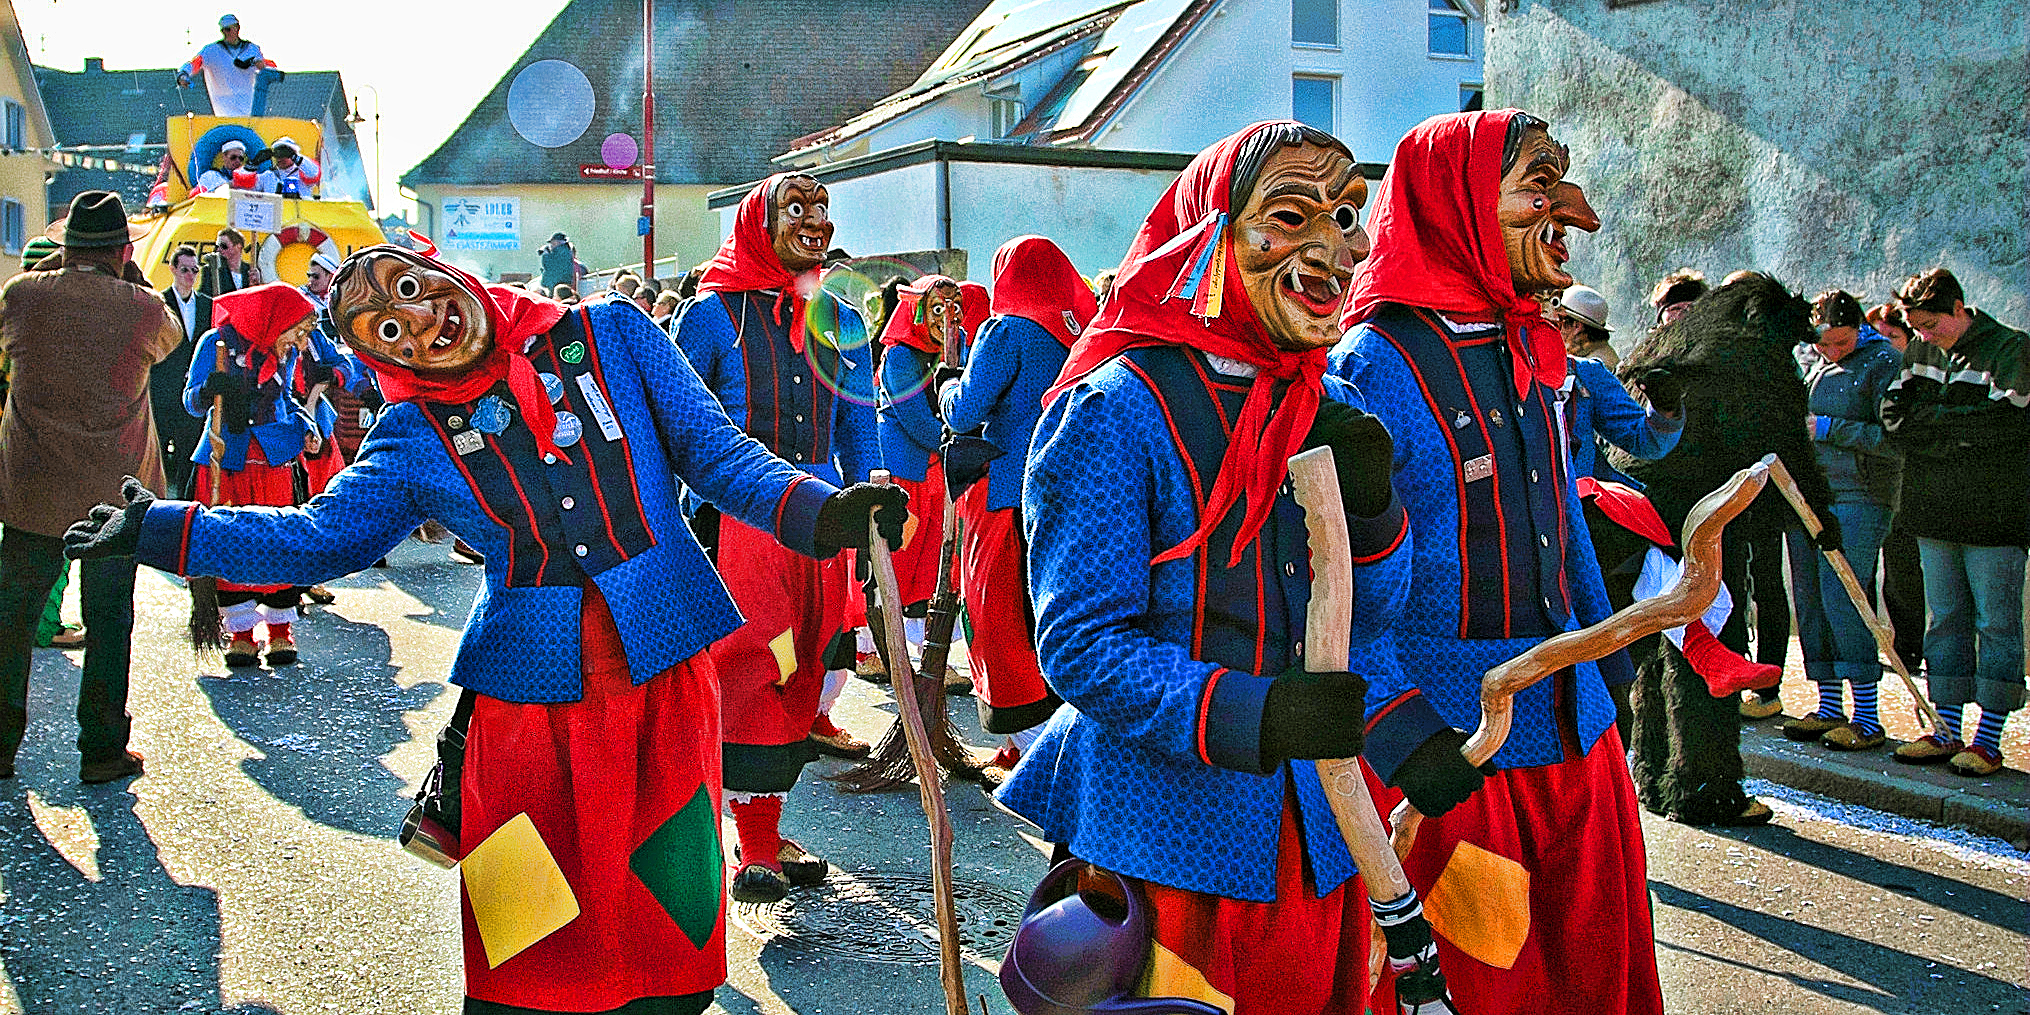 Spring carnival in Gottenheim, Germany